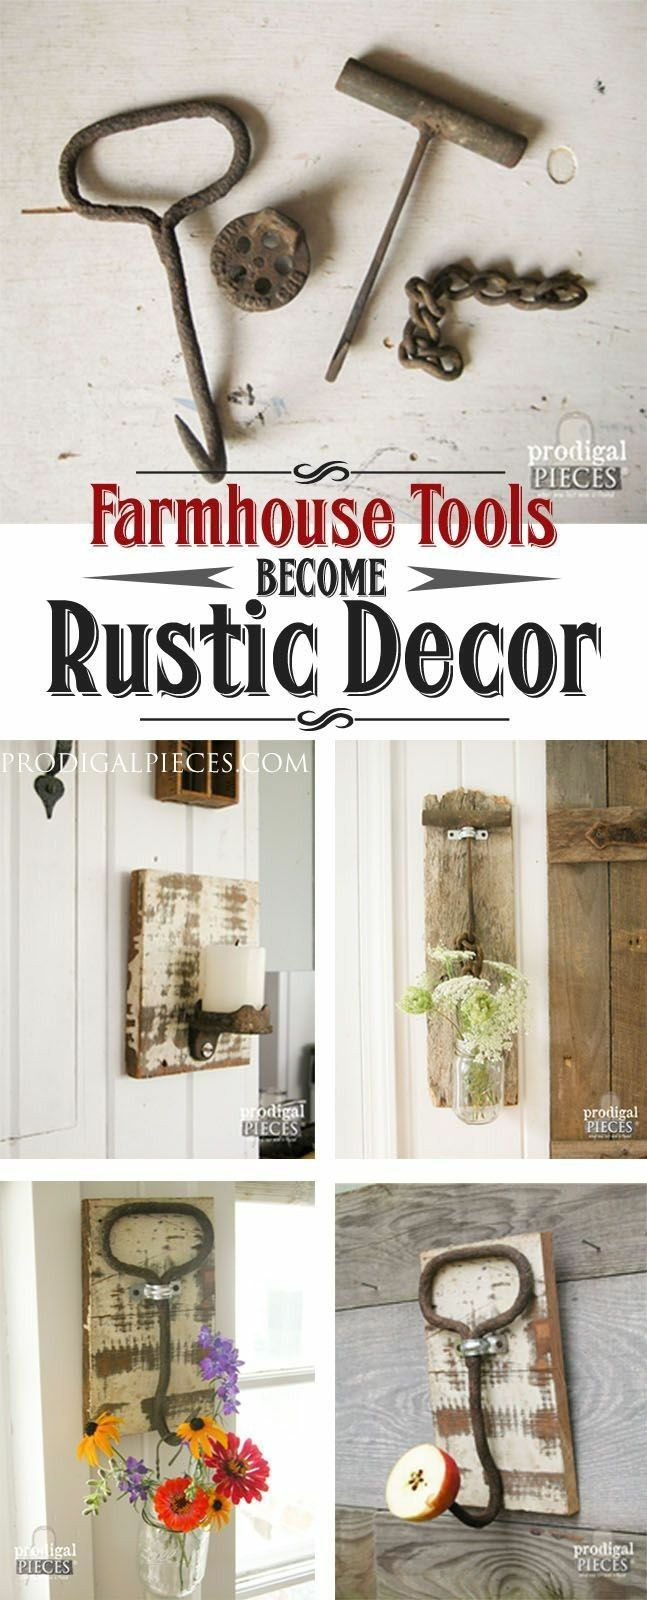 58 best Farmhouse Rustic Style images on Pinterest | Channel ...